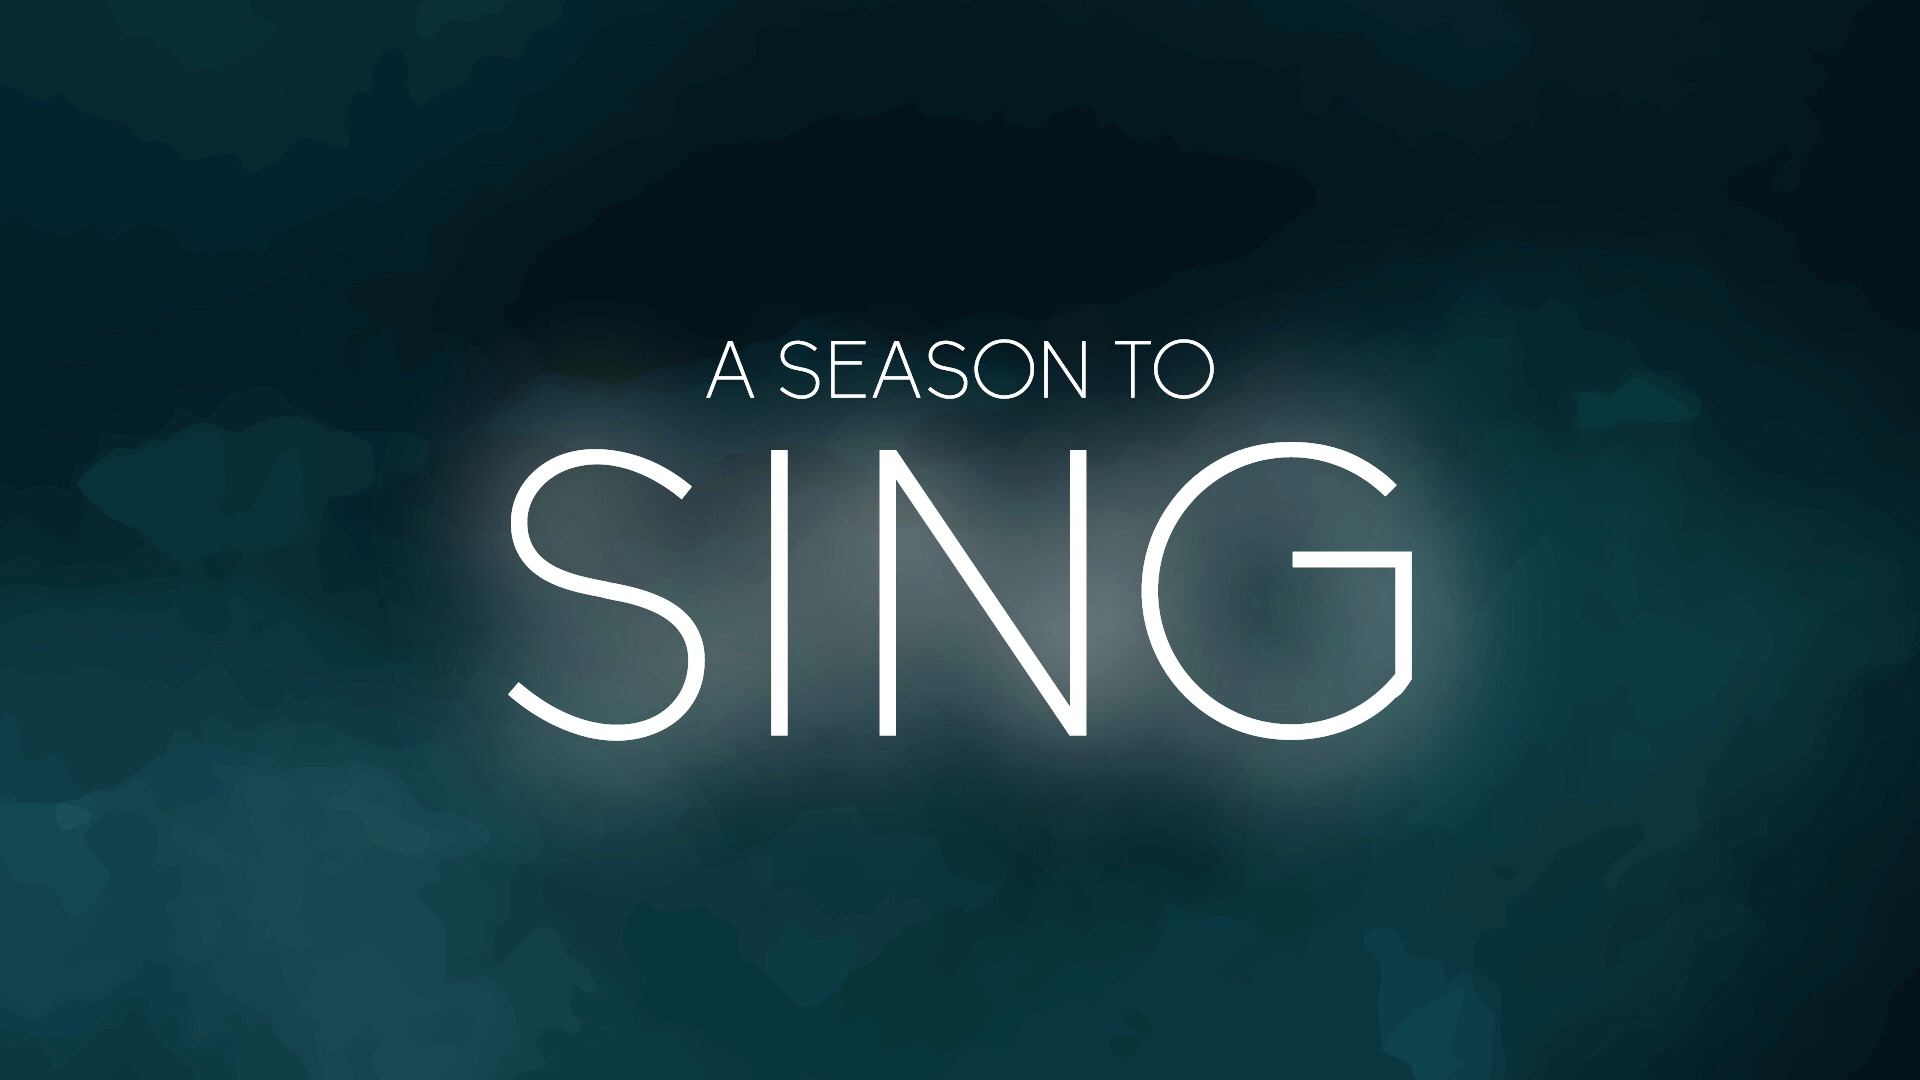 Season to Sing.jpg